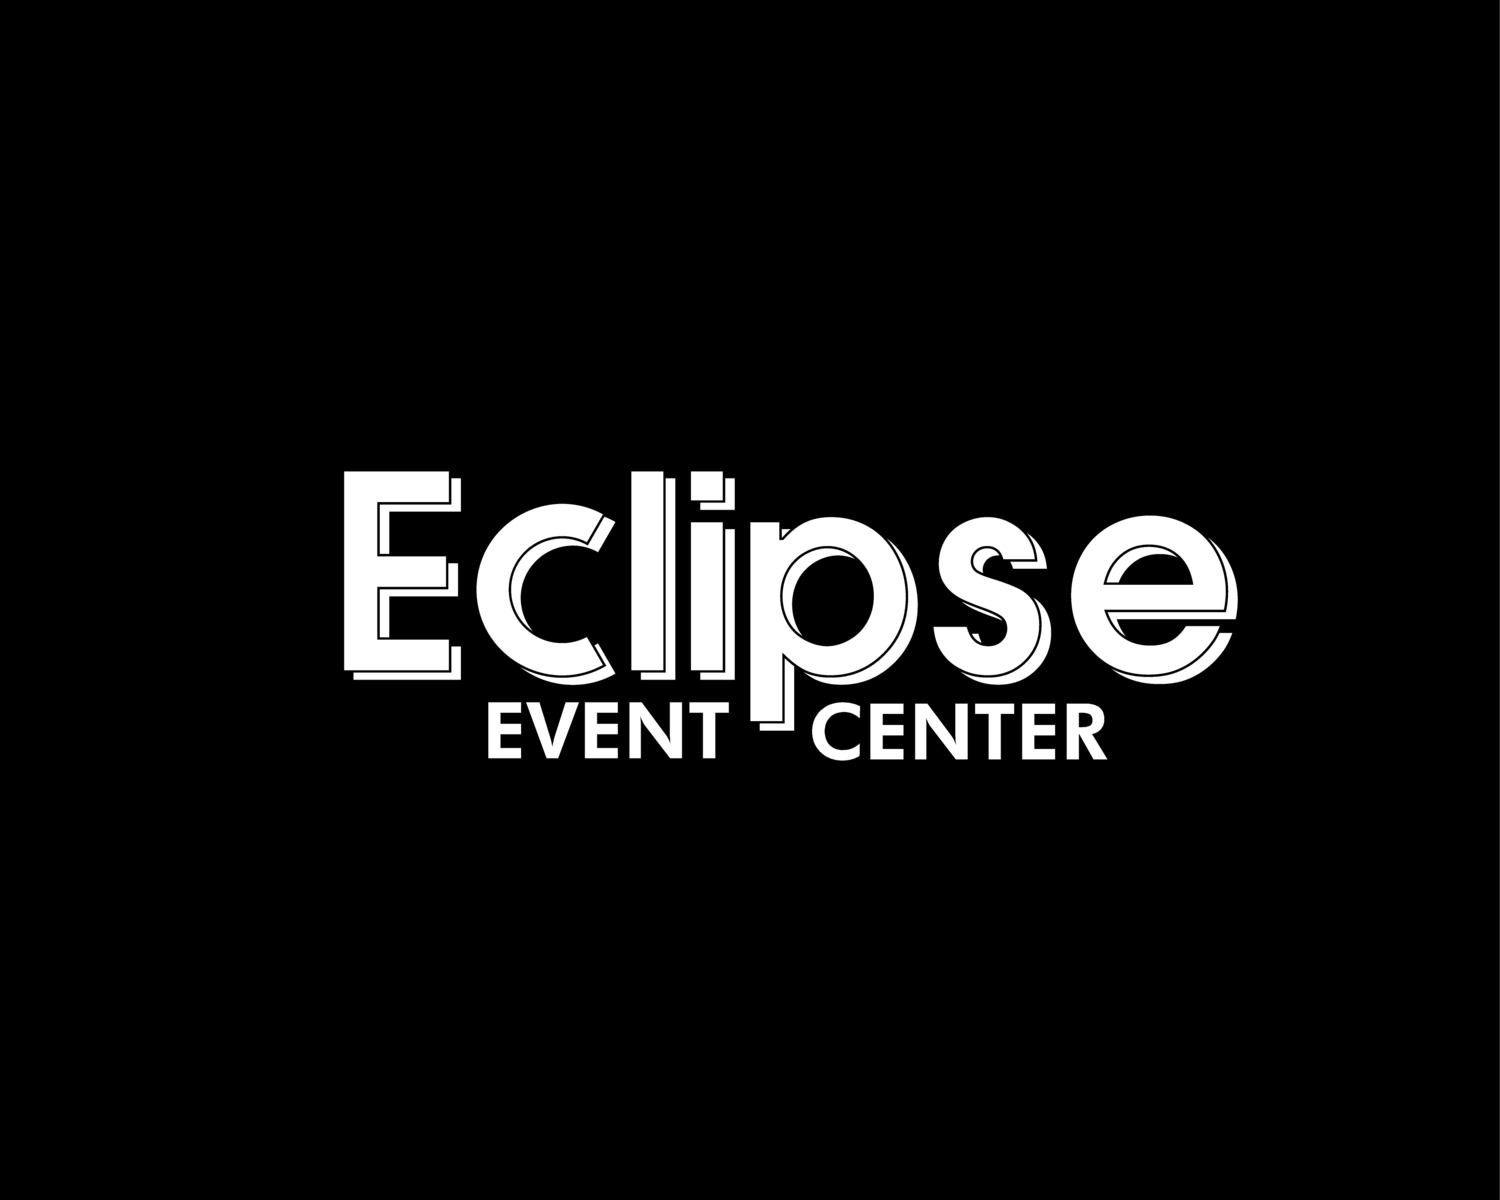 Eclipse Center